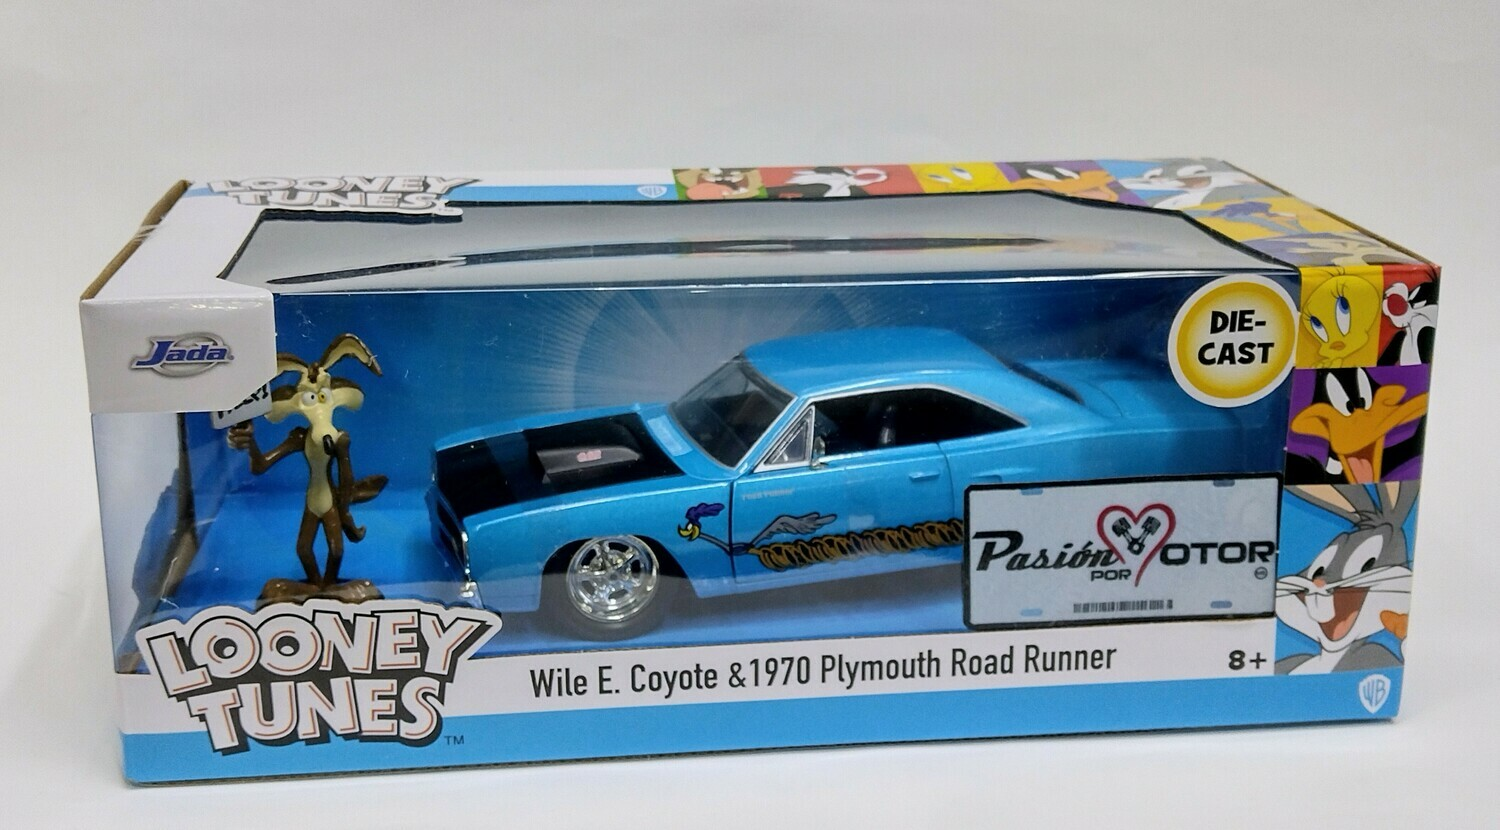 Jada Toys1:24PlymouthRoad Runner Coupe 440C Figura Wile E. Coyote 1970 Azul Hollywood Rides Looney Tunes Con Caja